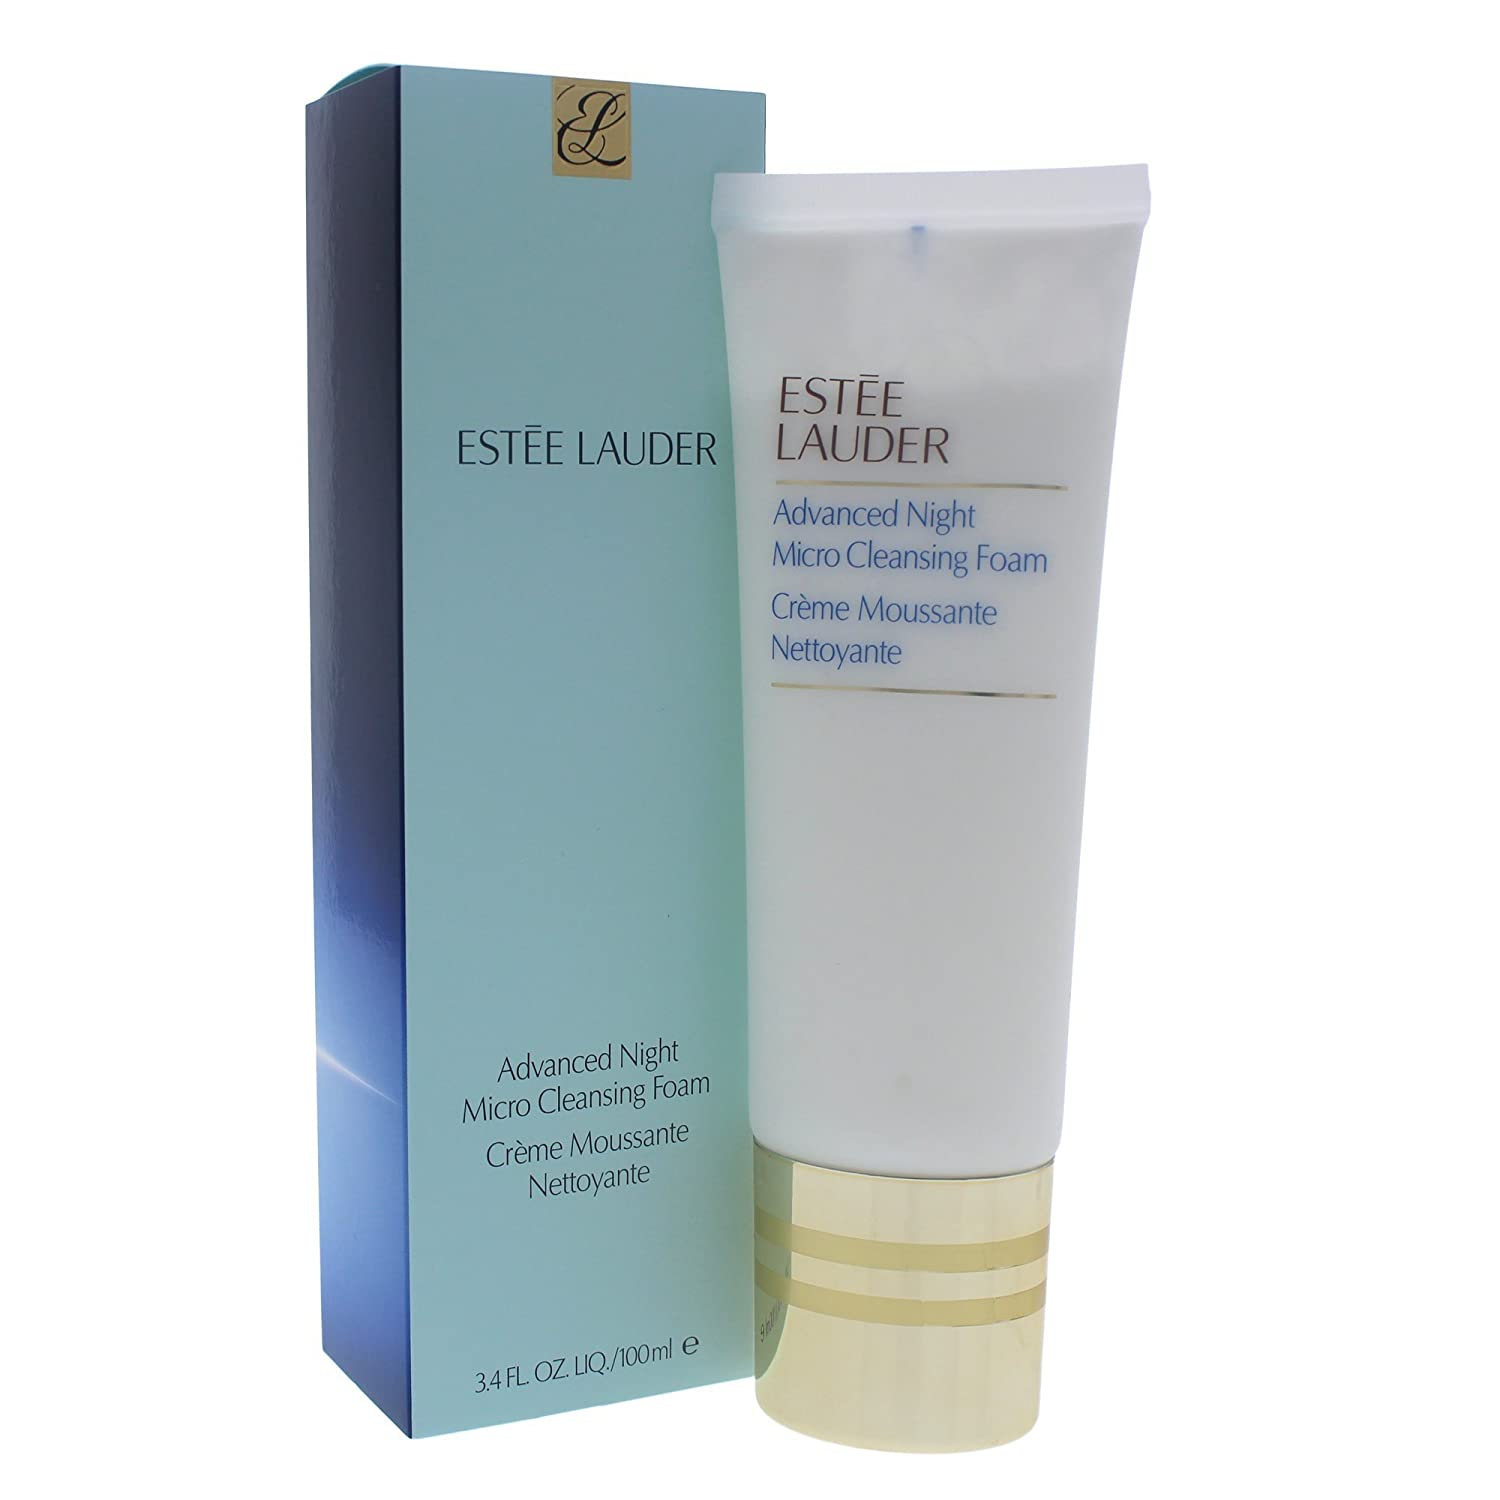 Estee Lauder Advanced Night Micro Cleansing Foam, 3.4 Ounce 887167223769